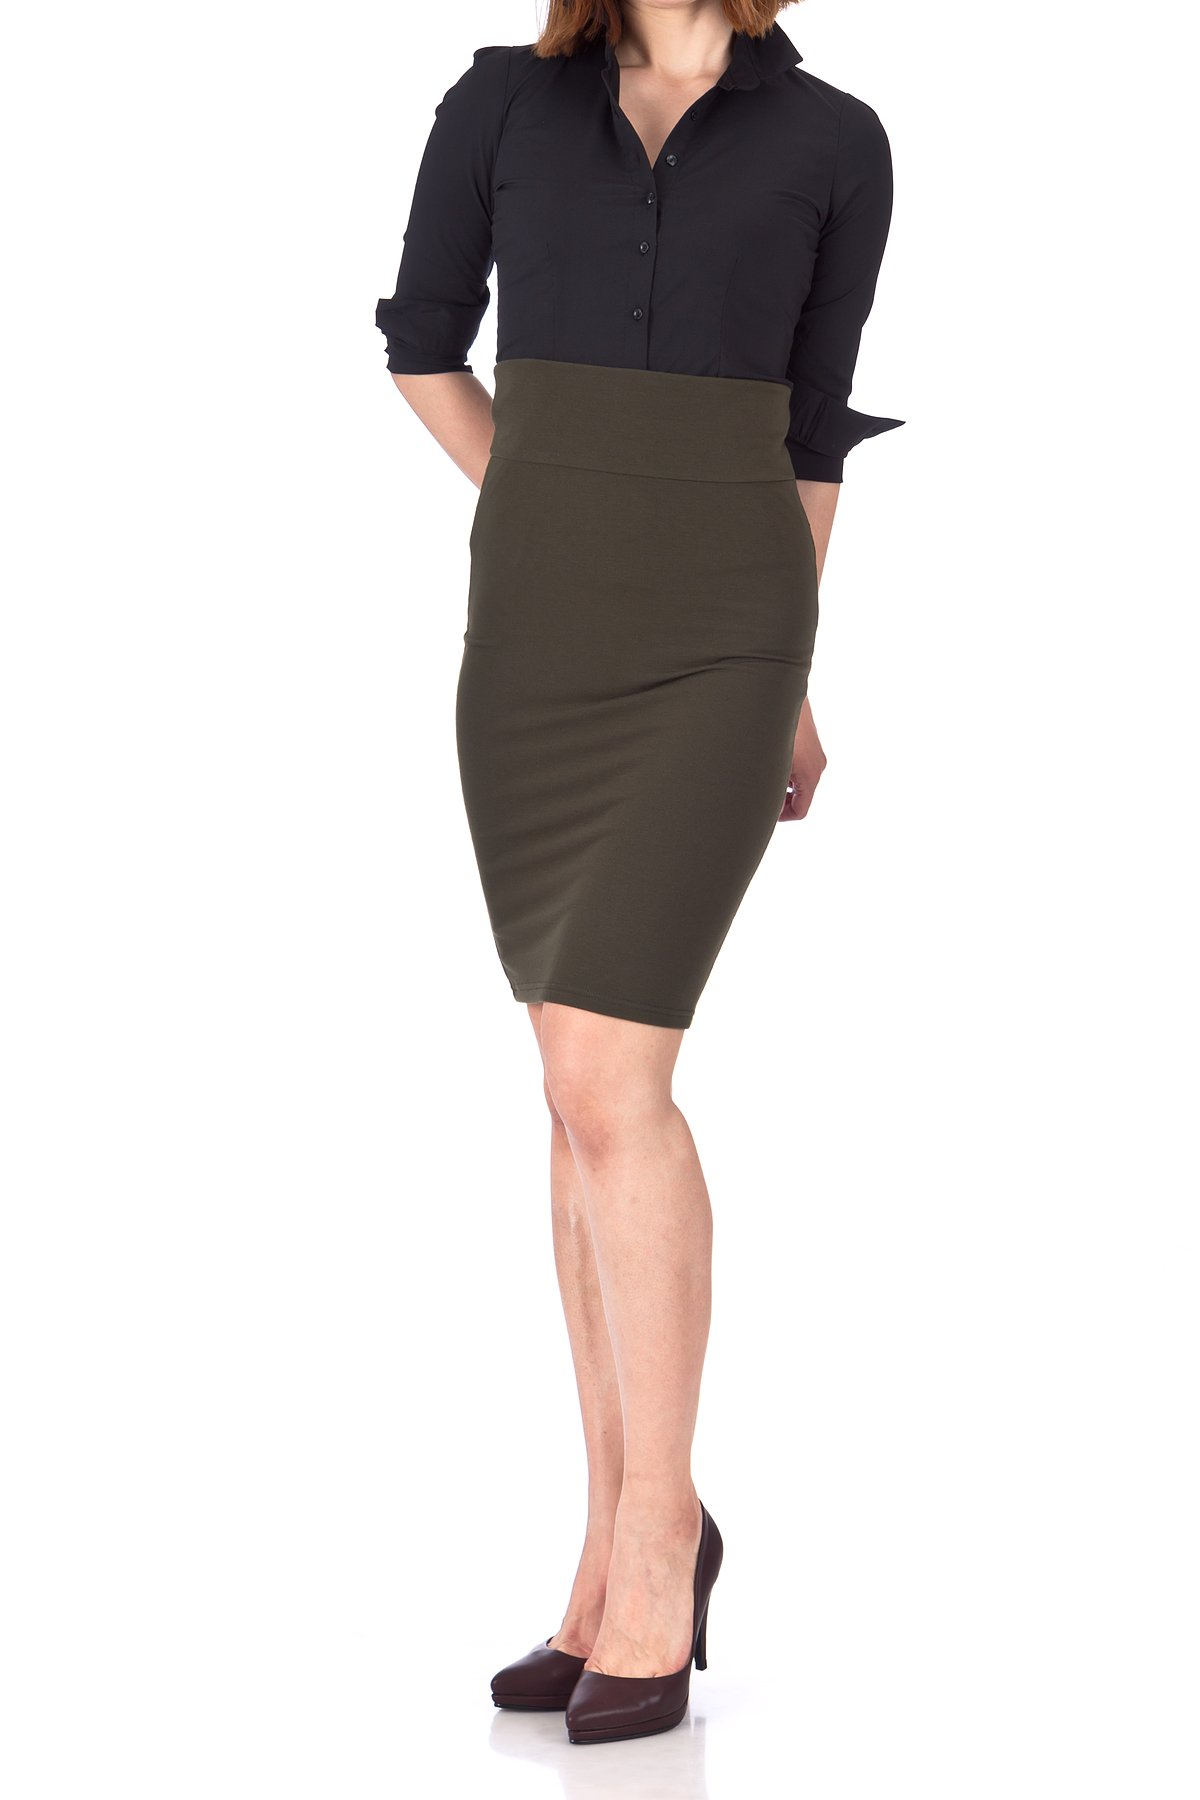 Every Occasion Stretch Pull on Wide High Waist Bodycon Pencil Knee Length Midi Skirt Khaki 04